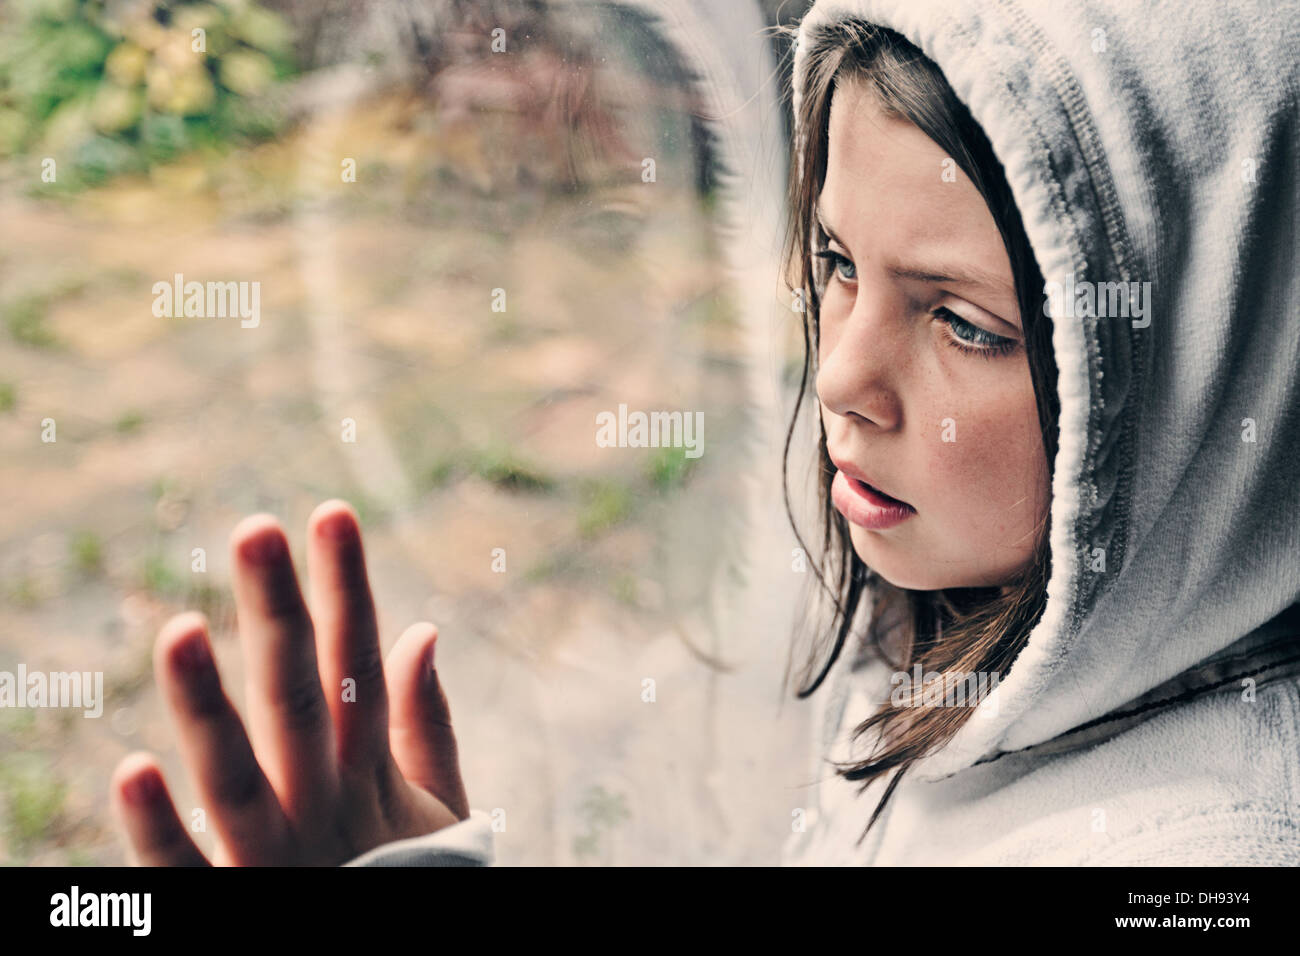 Young Girl Looking out of Window Stock Photo